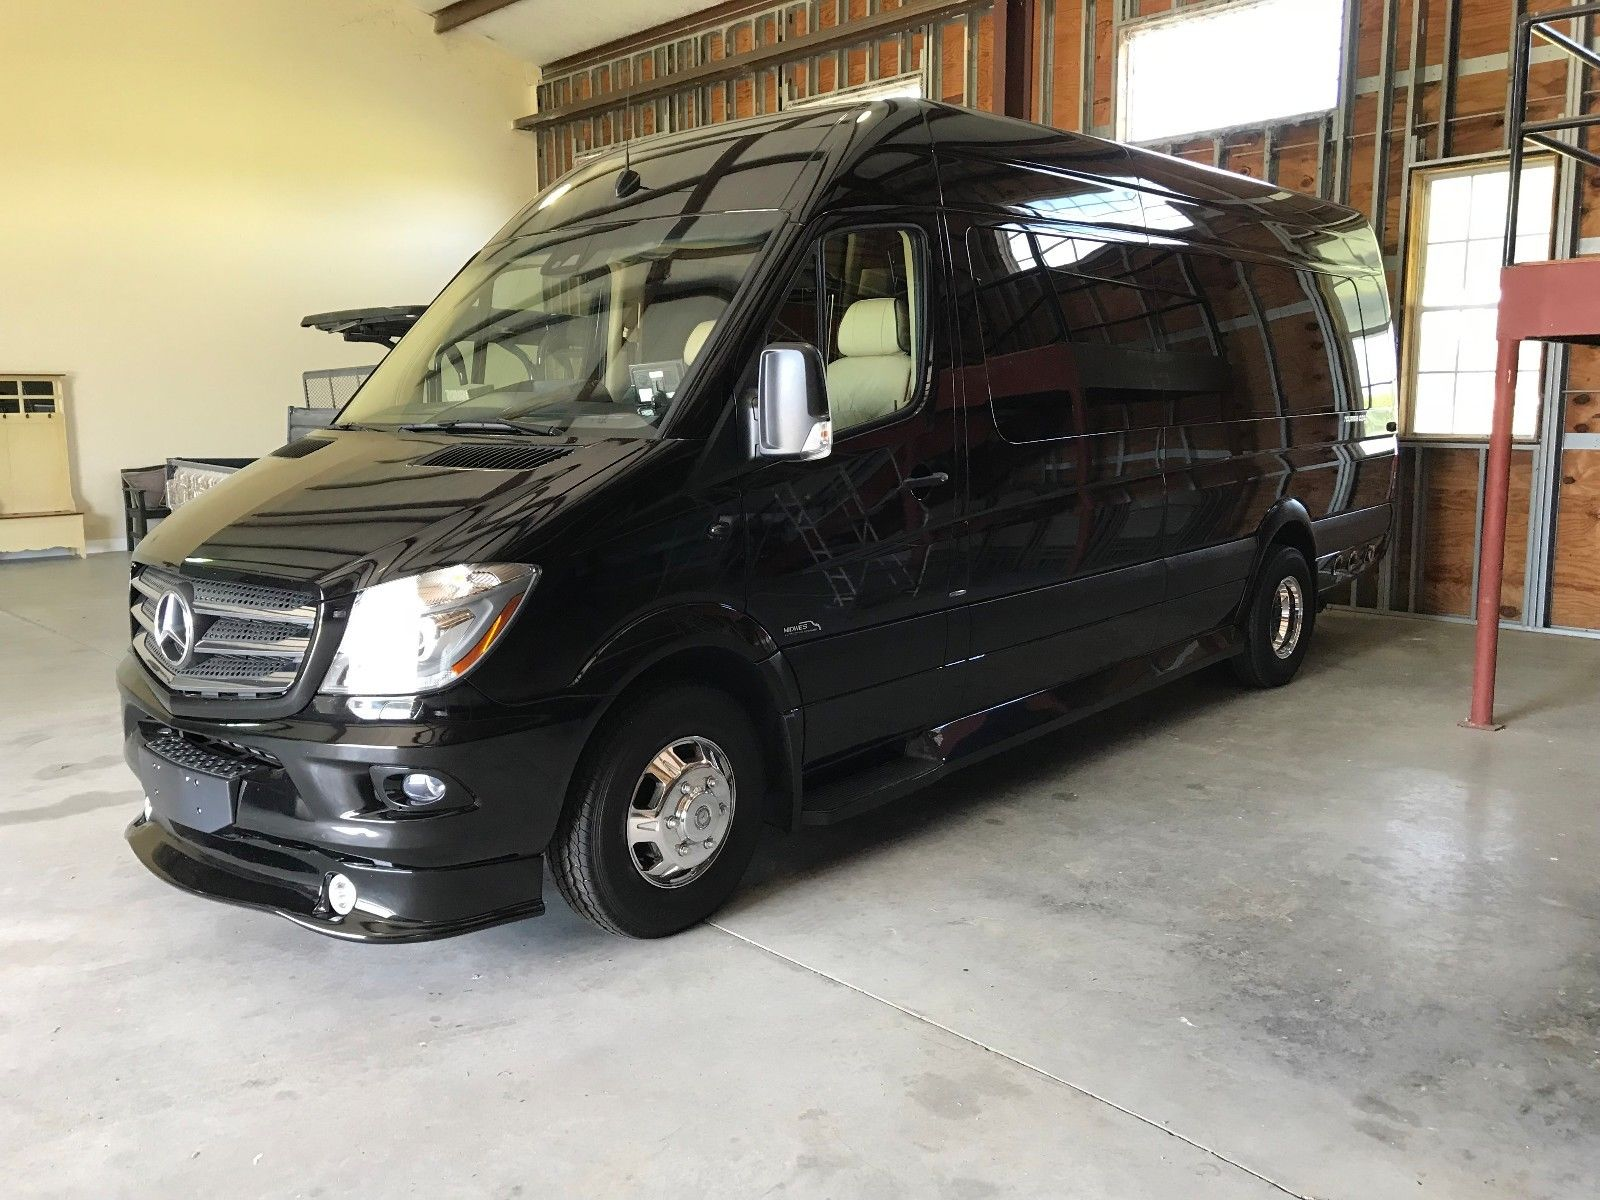 Luxury RV Rental Los Angeles, Sprinter RV Rental Los Angeles - RV